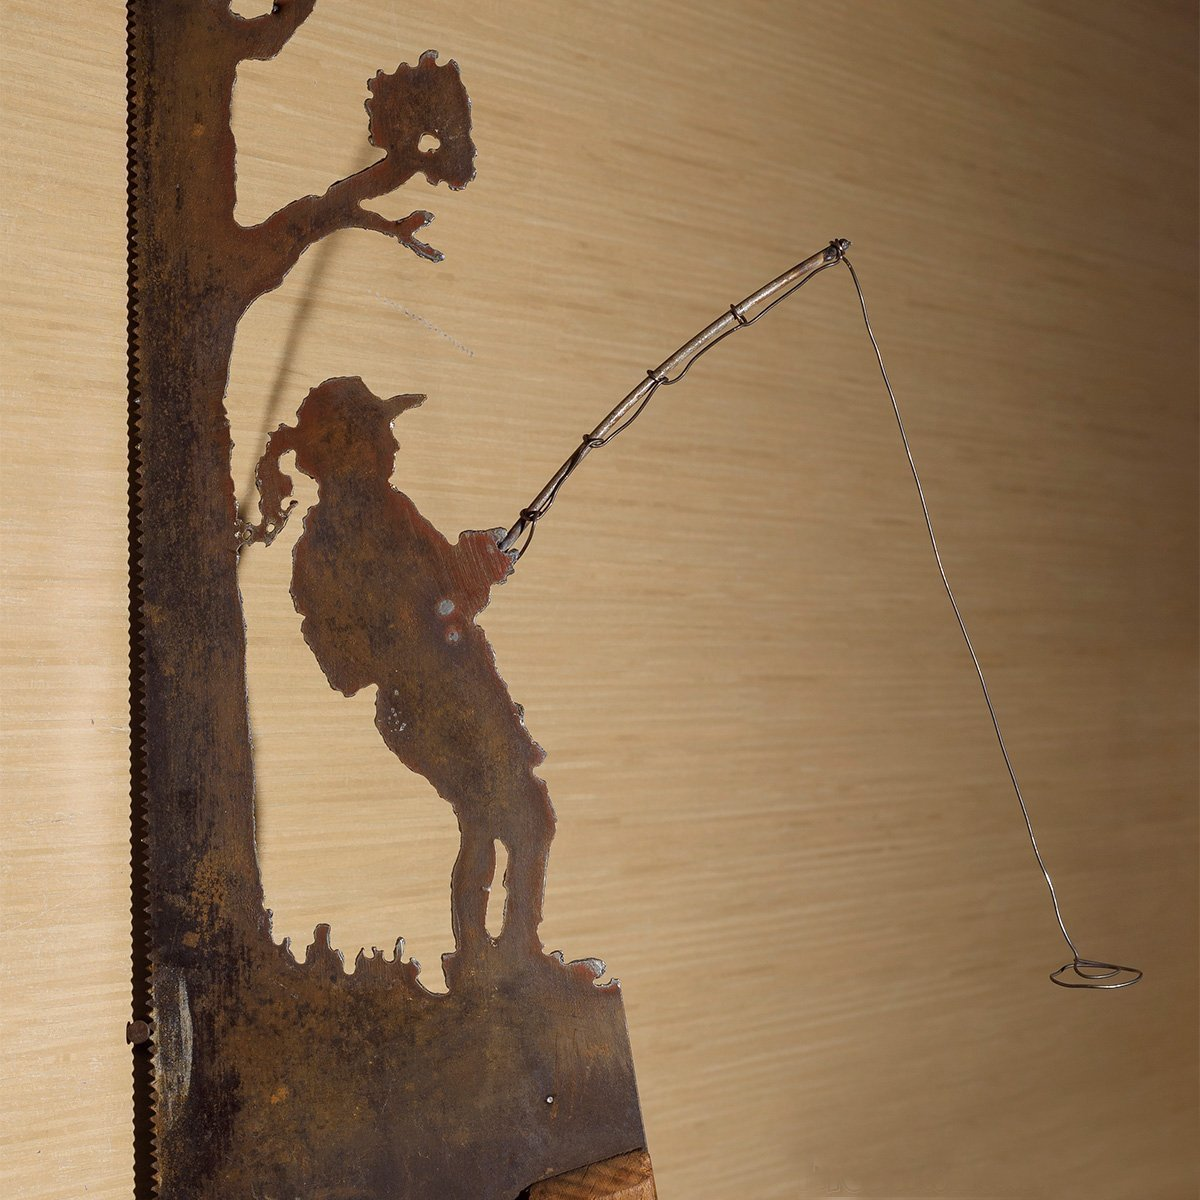 Amazon.com  Metal Art Rustic plasma cut Young Girl or Boy Fishing near a  tree hand saw wall decor - Made to Order plasma cut metal art 0832fc5f3